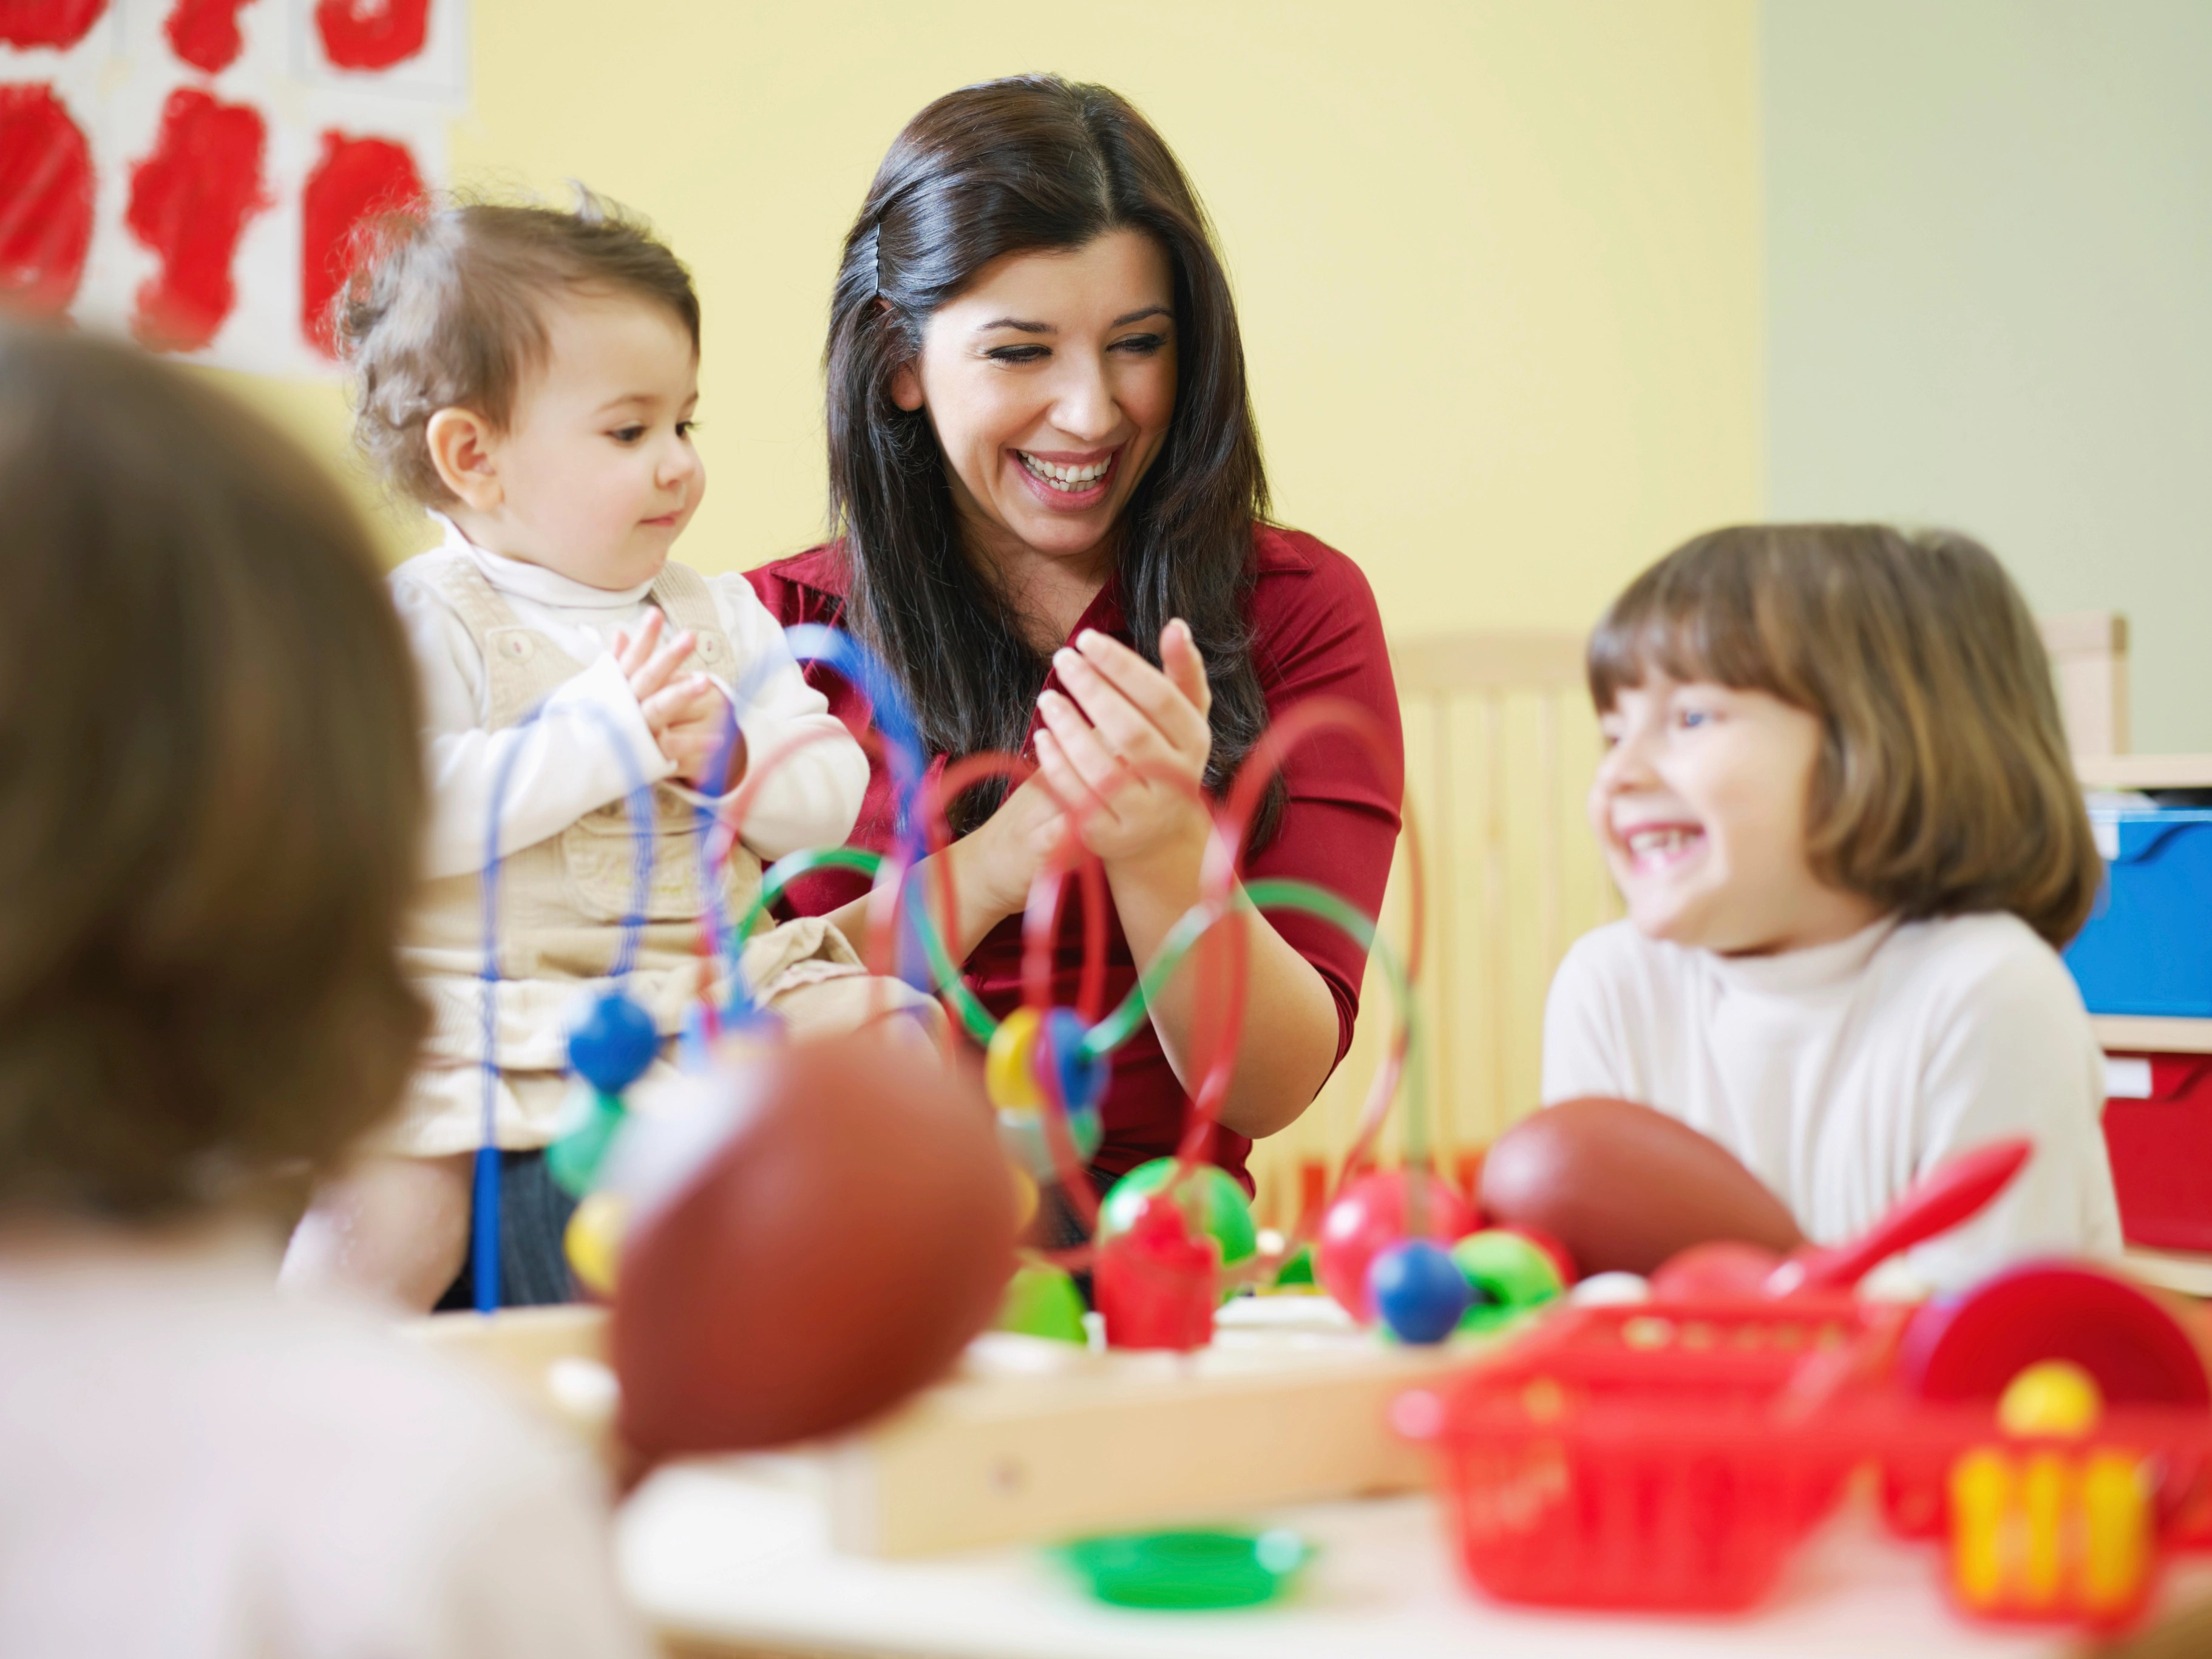 Degree requirements for childcare workers may improve